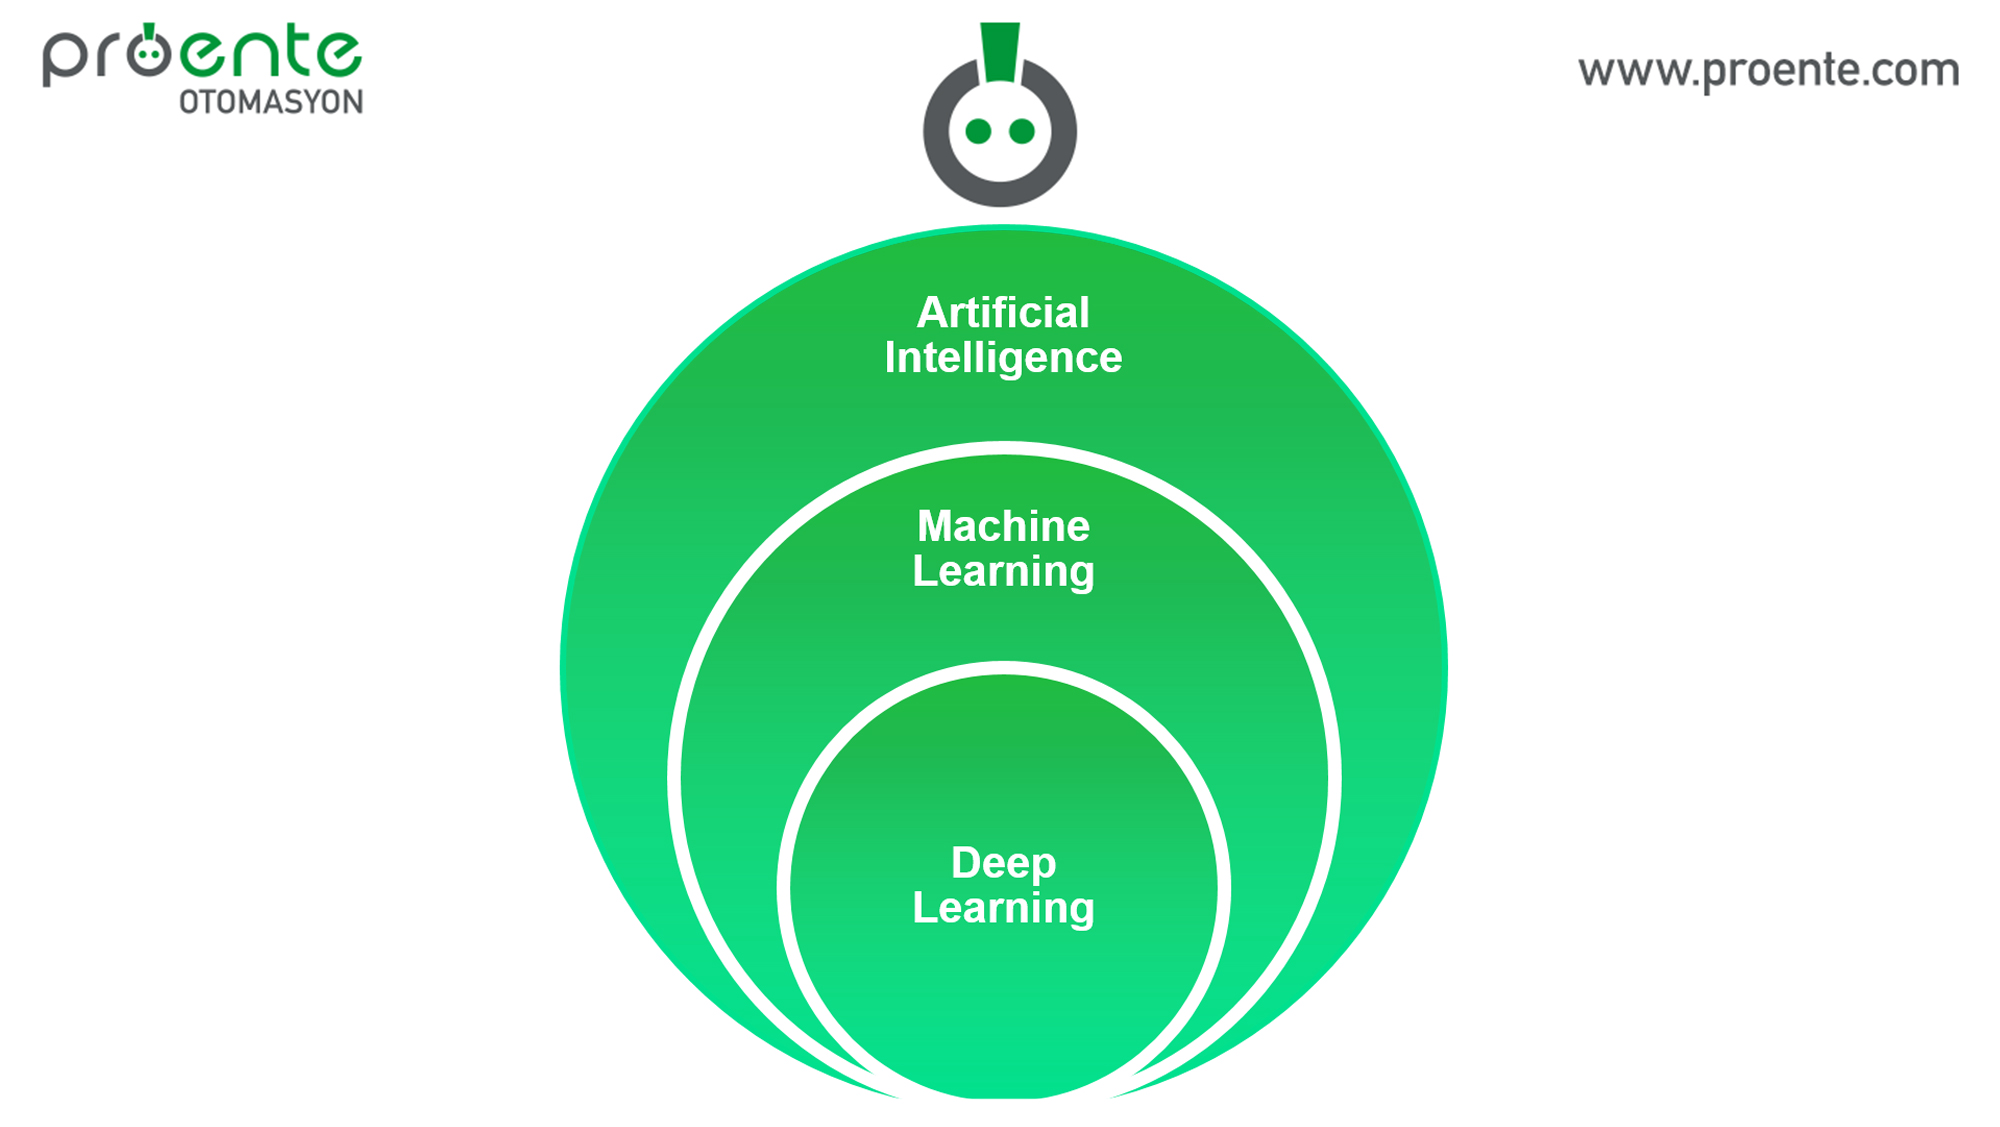 artificial intelligence, machine learning, deep learning,